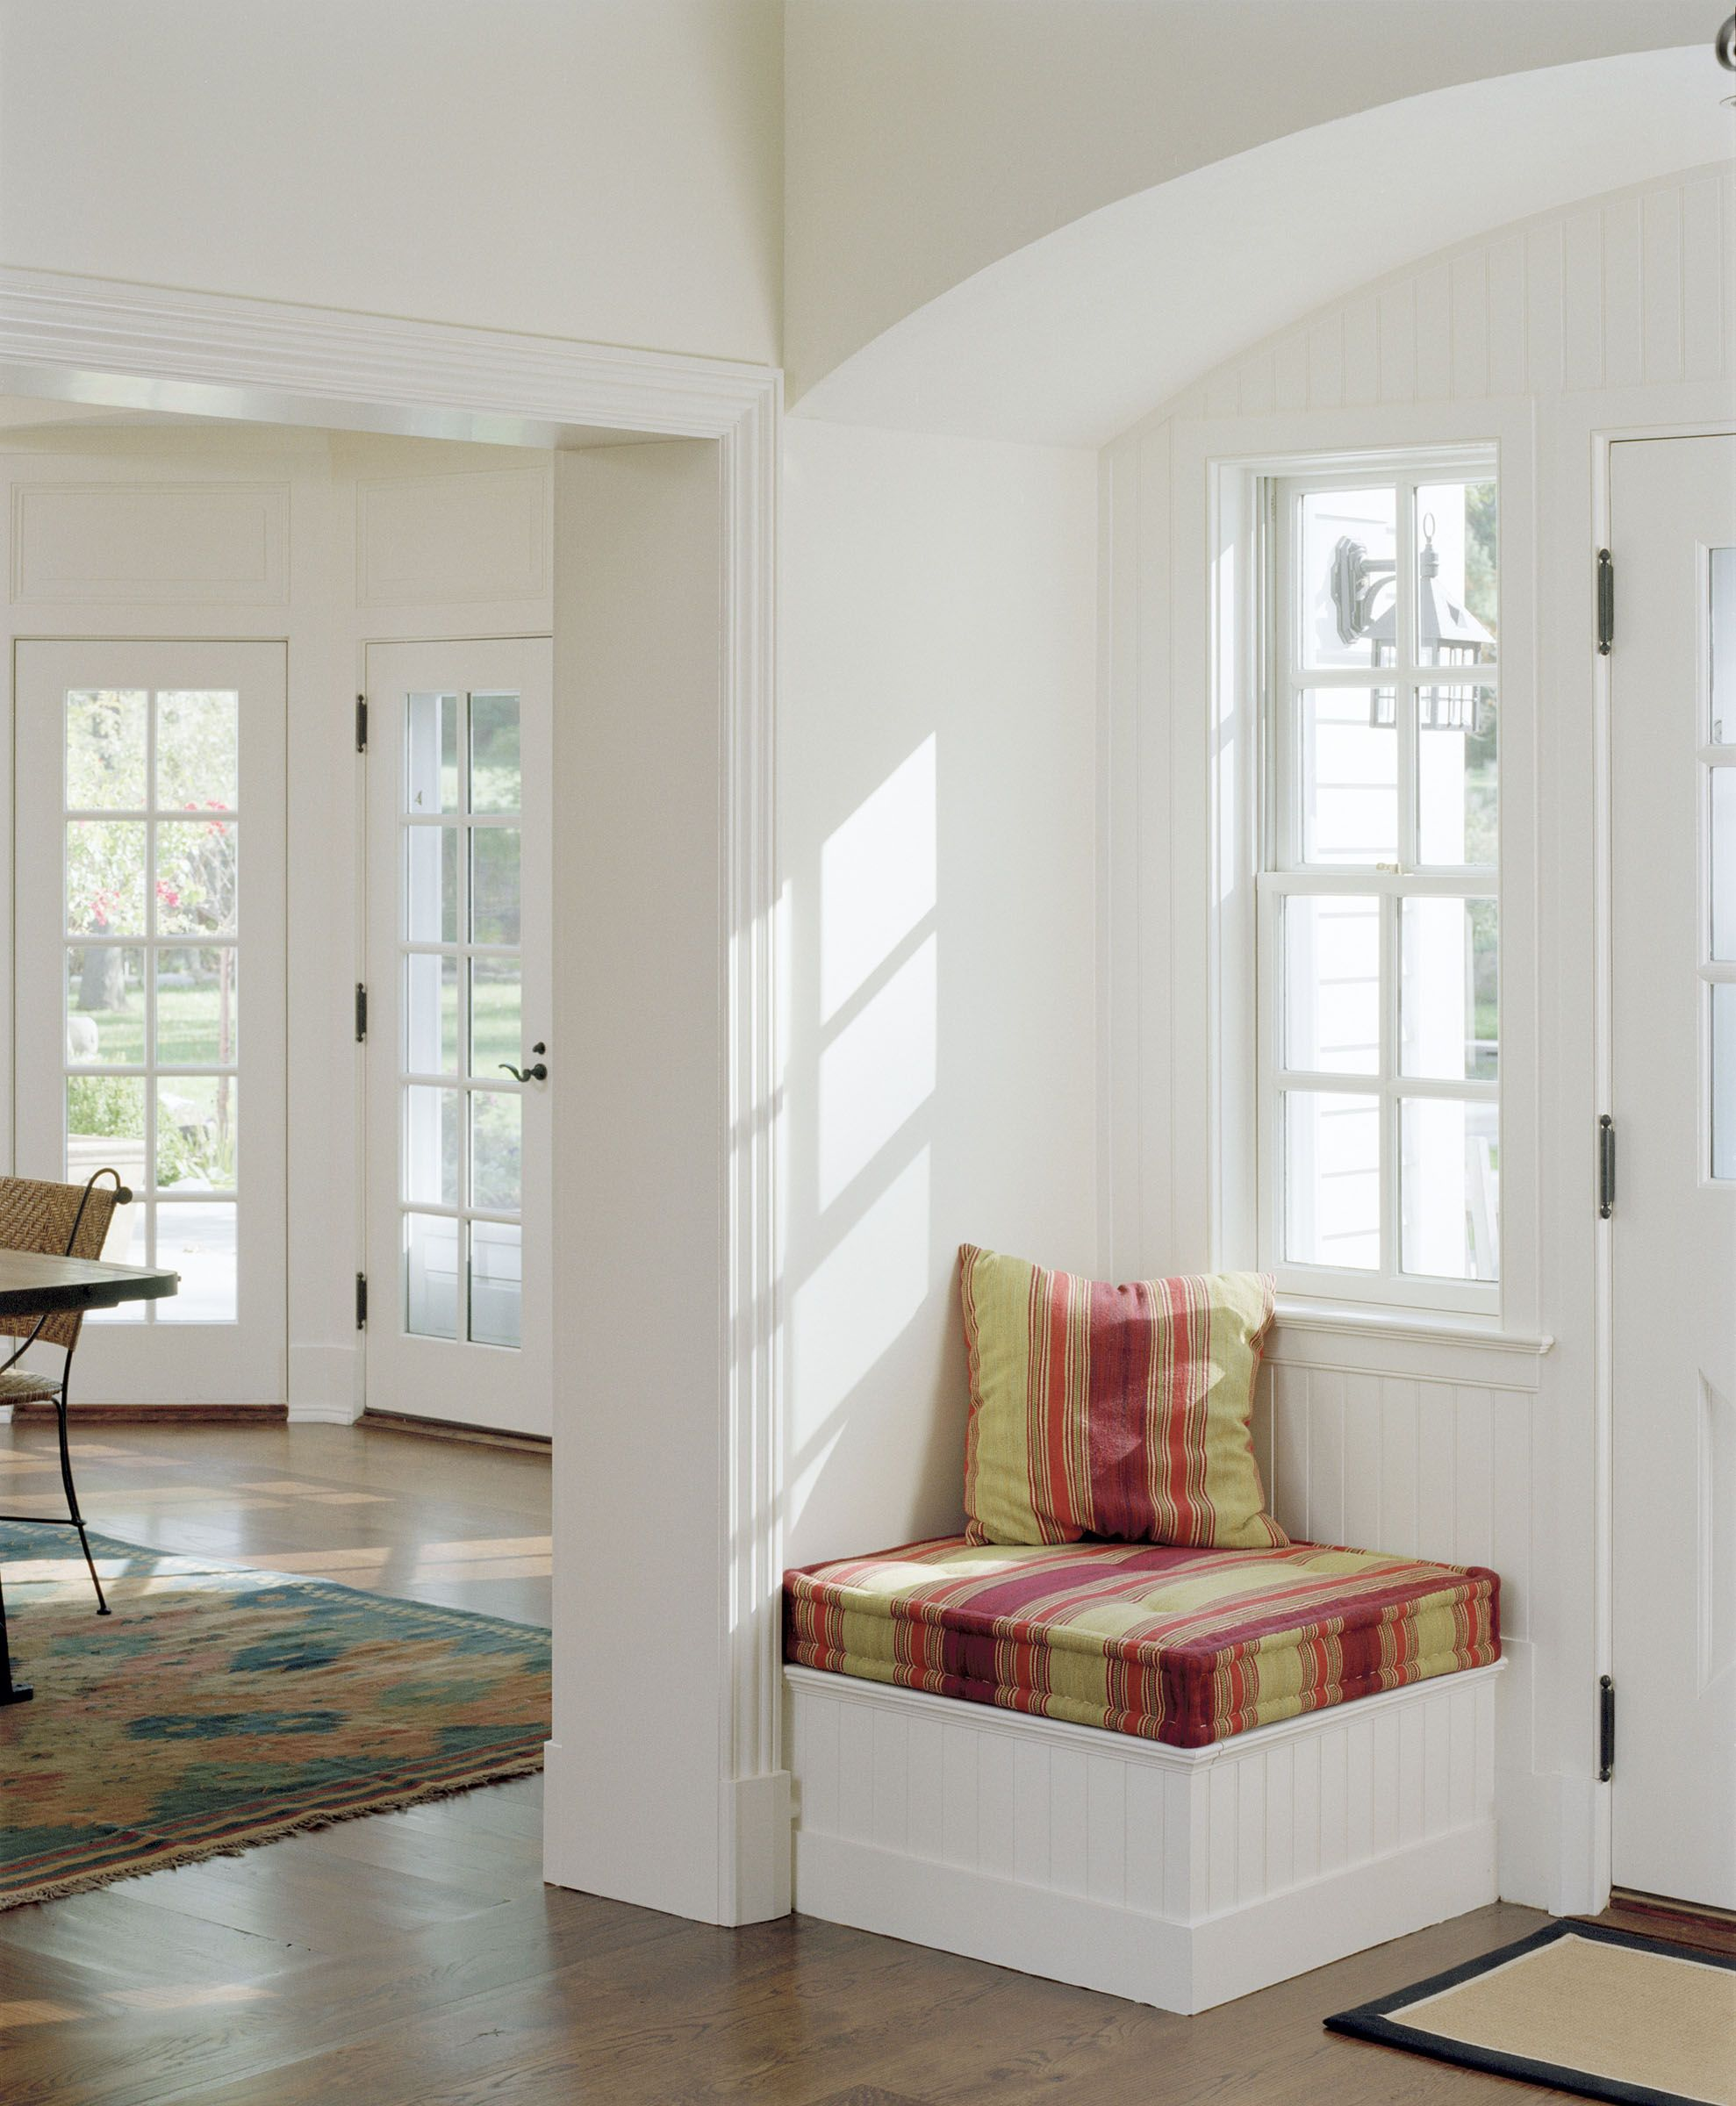 Amazing Small Window Seat Ideas Part - 4: A Small Seat Under A Window Next